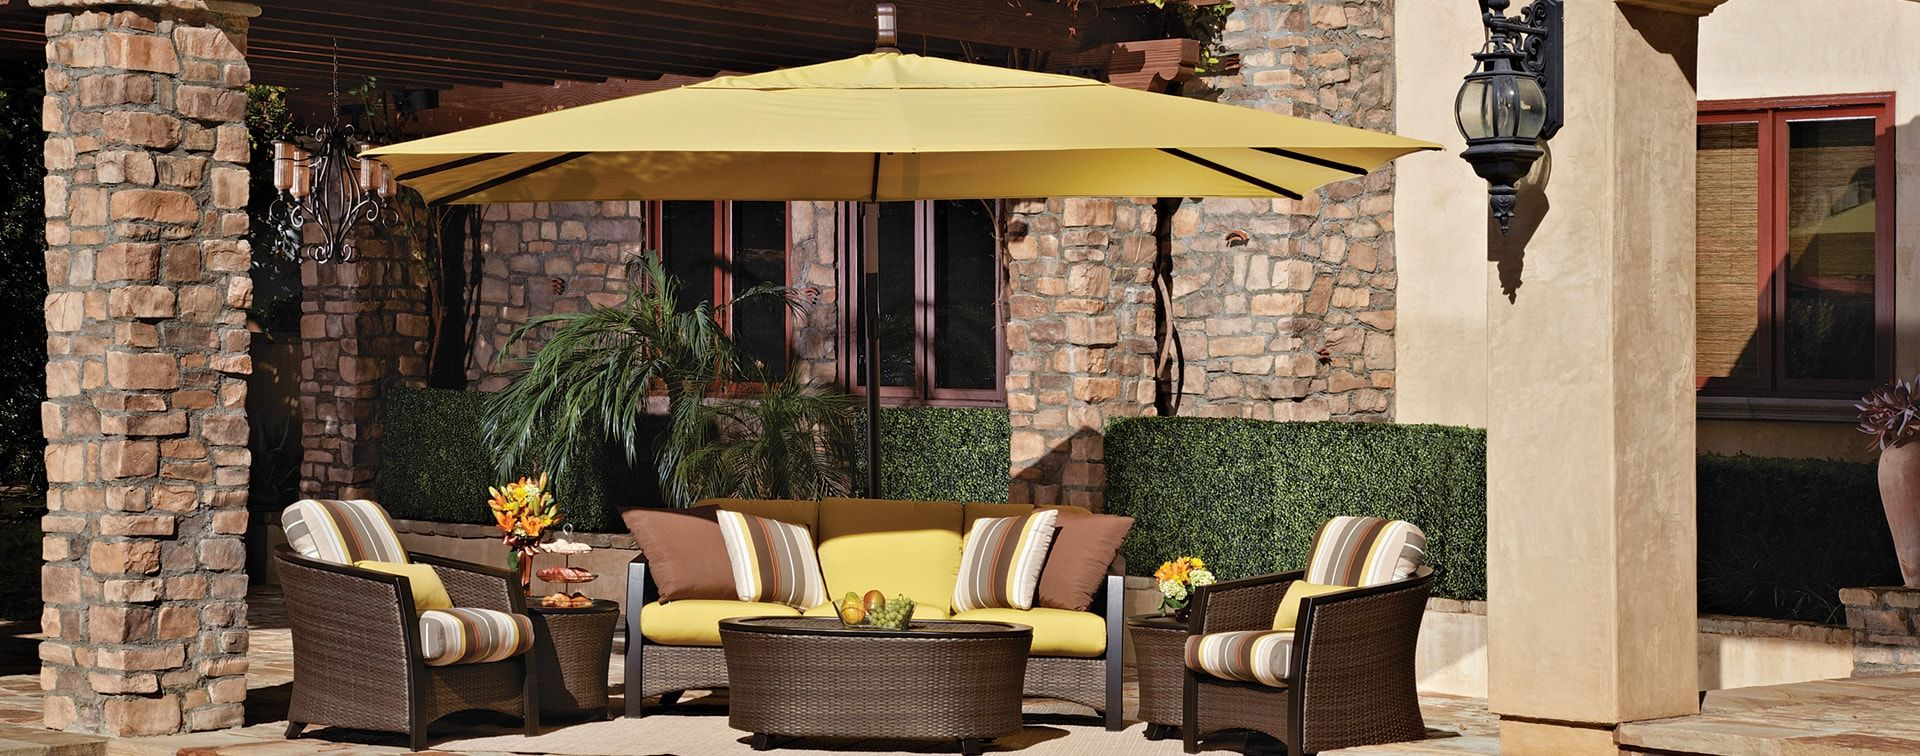 Treasure Island Patio Furniture   Youu0027re Looking To Purchase Furniture For  The Patio So That You Can Have A Pleasant Spot To